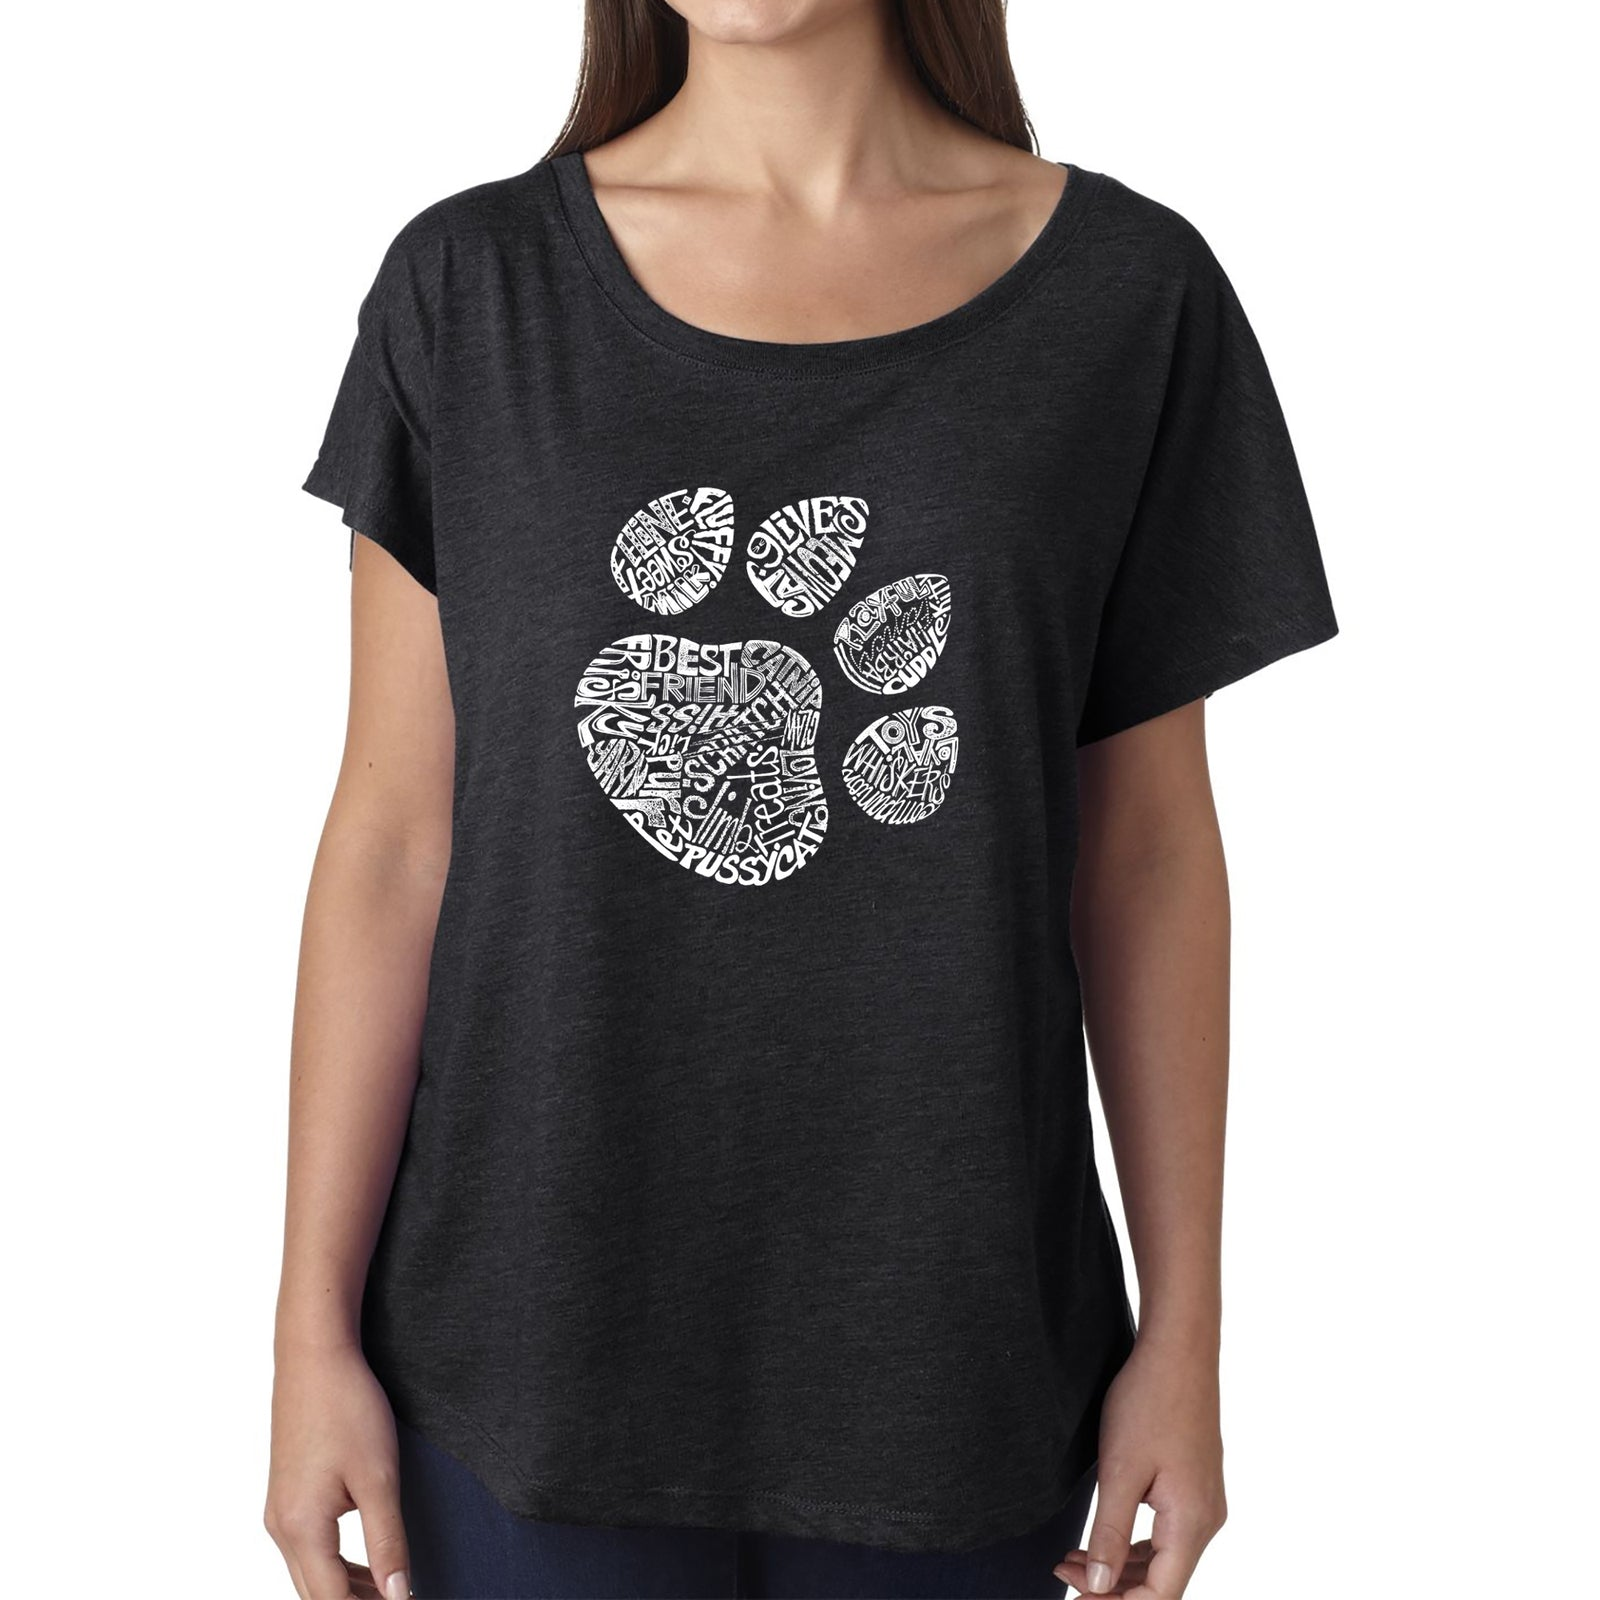 Women's Loose Fit Dolman Cut Word Art Shirt - Cat Paw